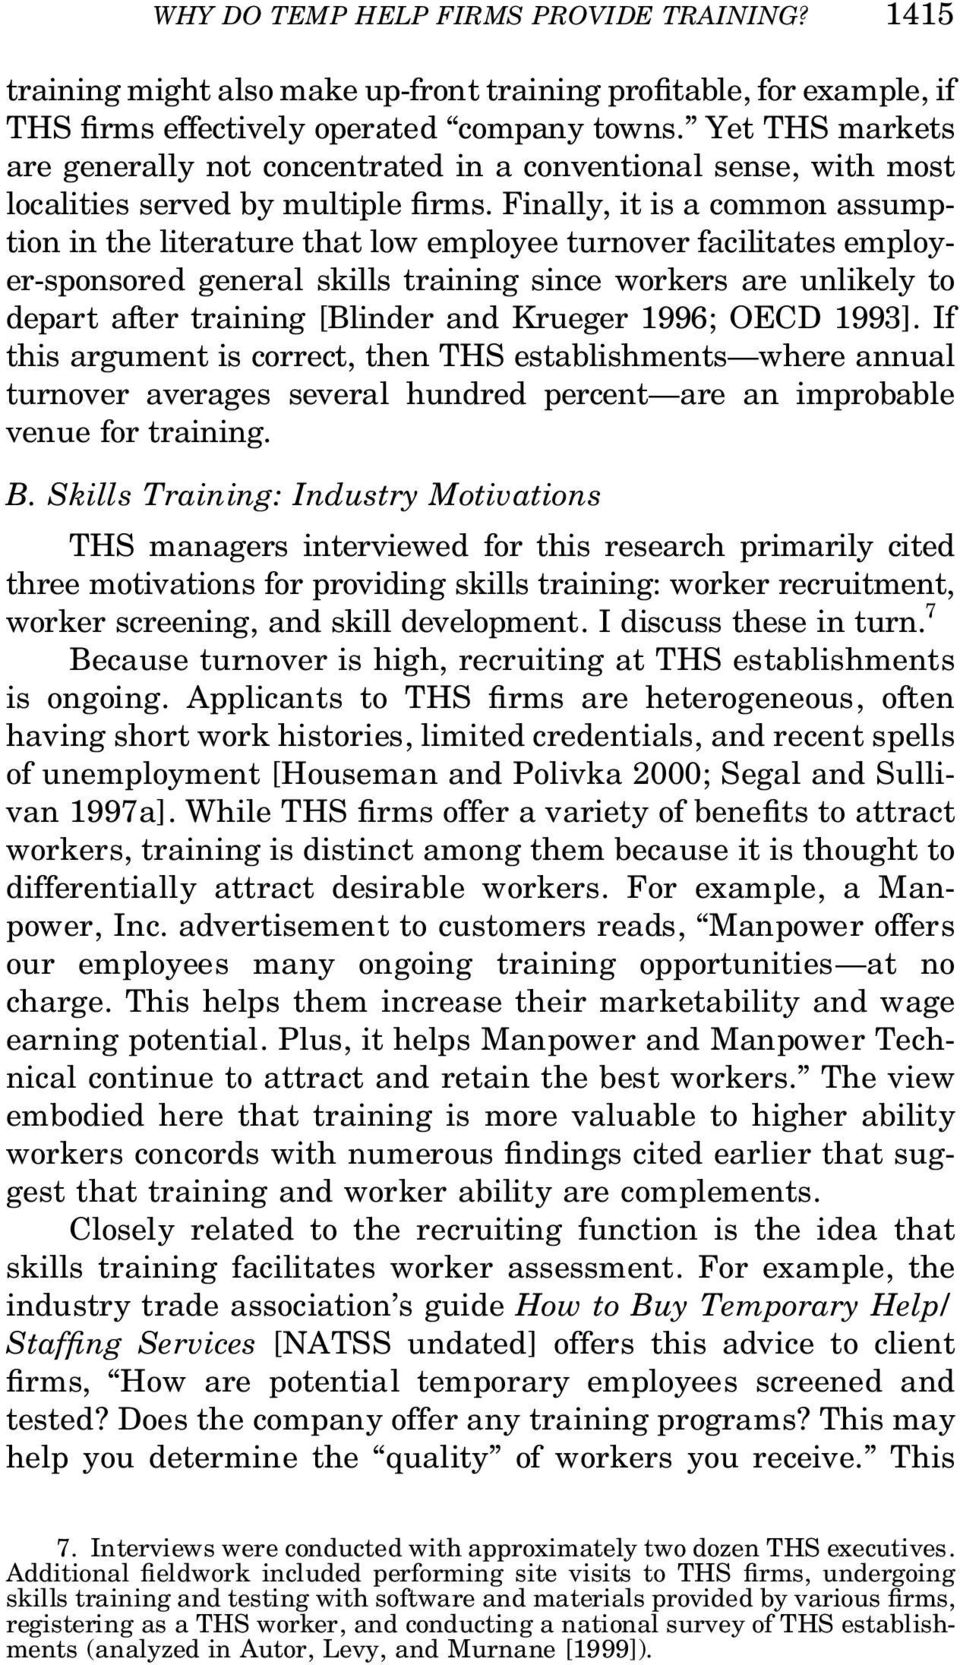 Finally, it is a common assumption in the literature that low employee turnover facilitates employer-sponsored general skills training since workers are unlikely to depart after training [Blinder and